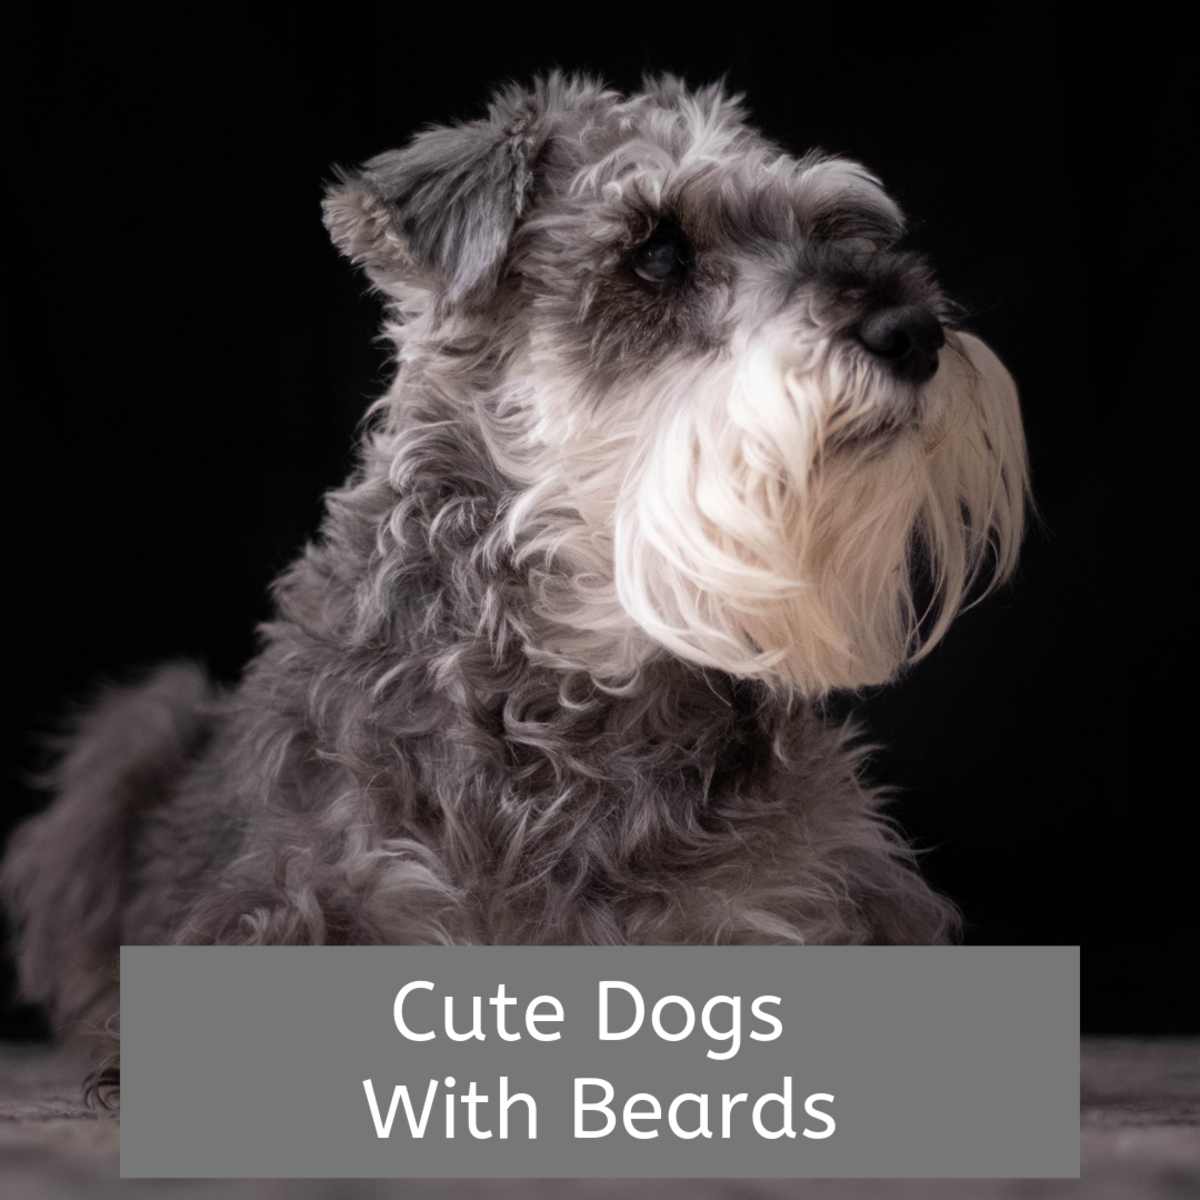 Learn about some of the many breeds of dogs with beards.